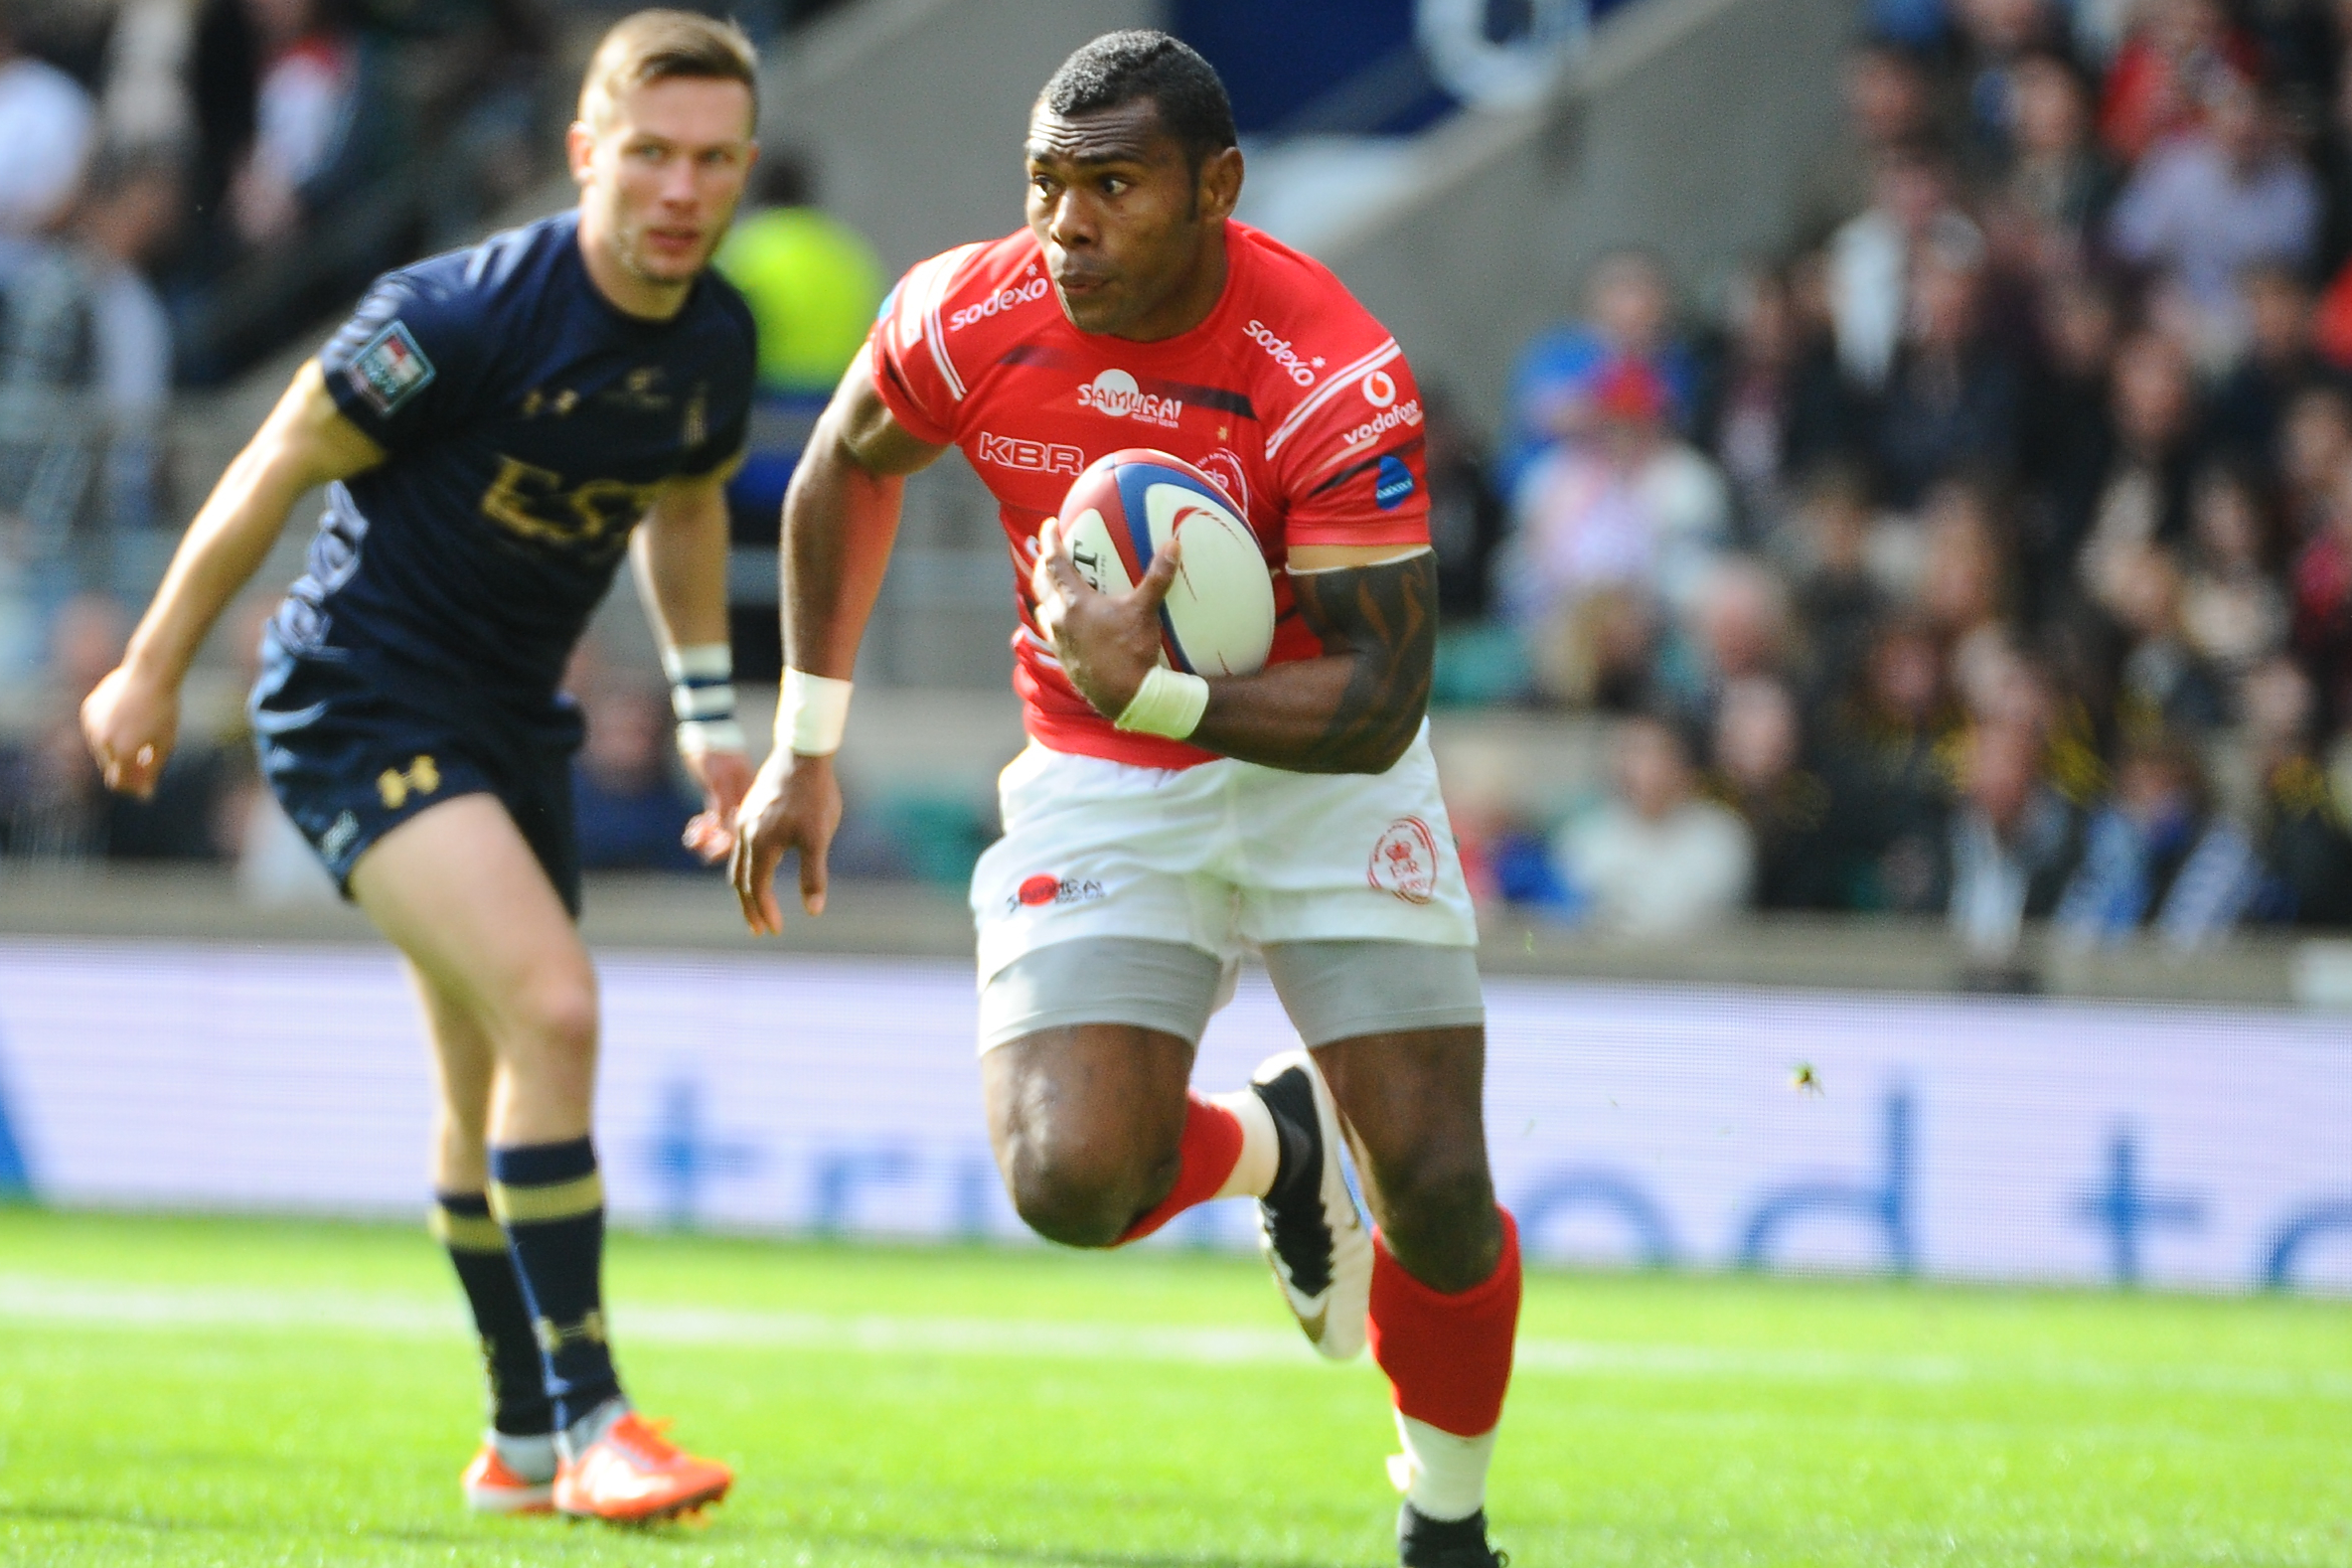 Weekend preview as Army men head into competitive action